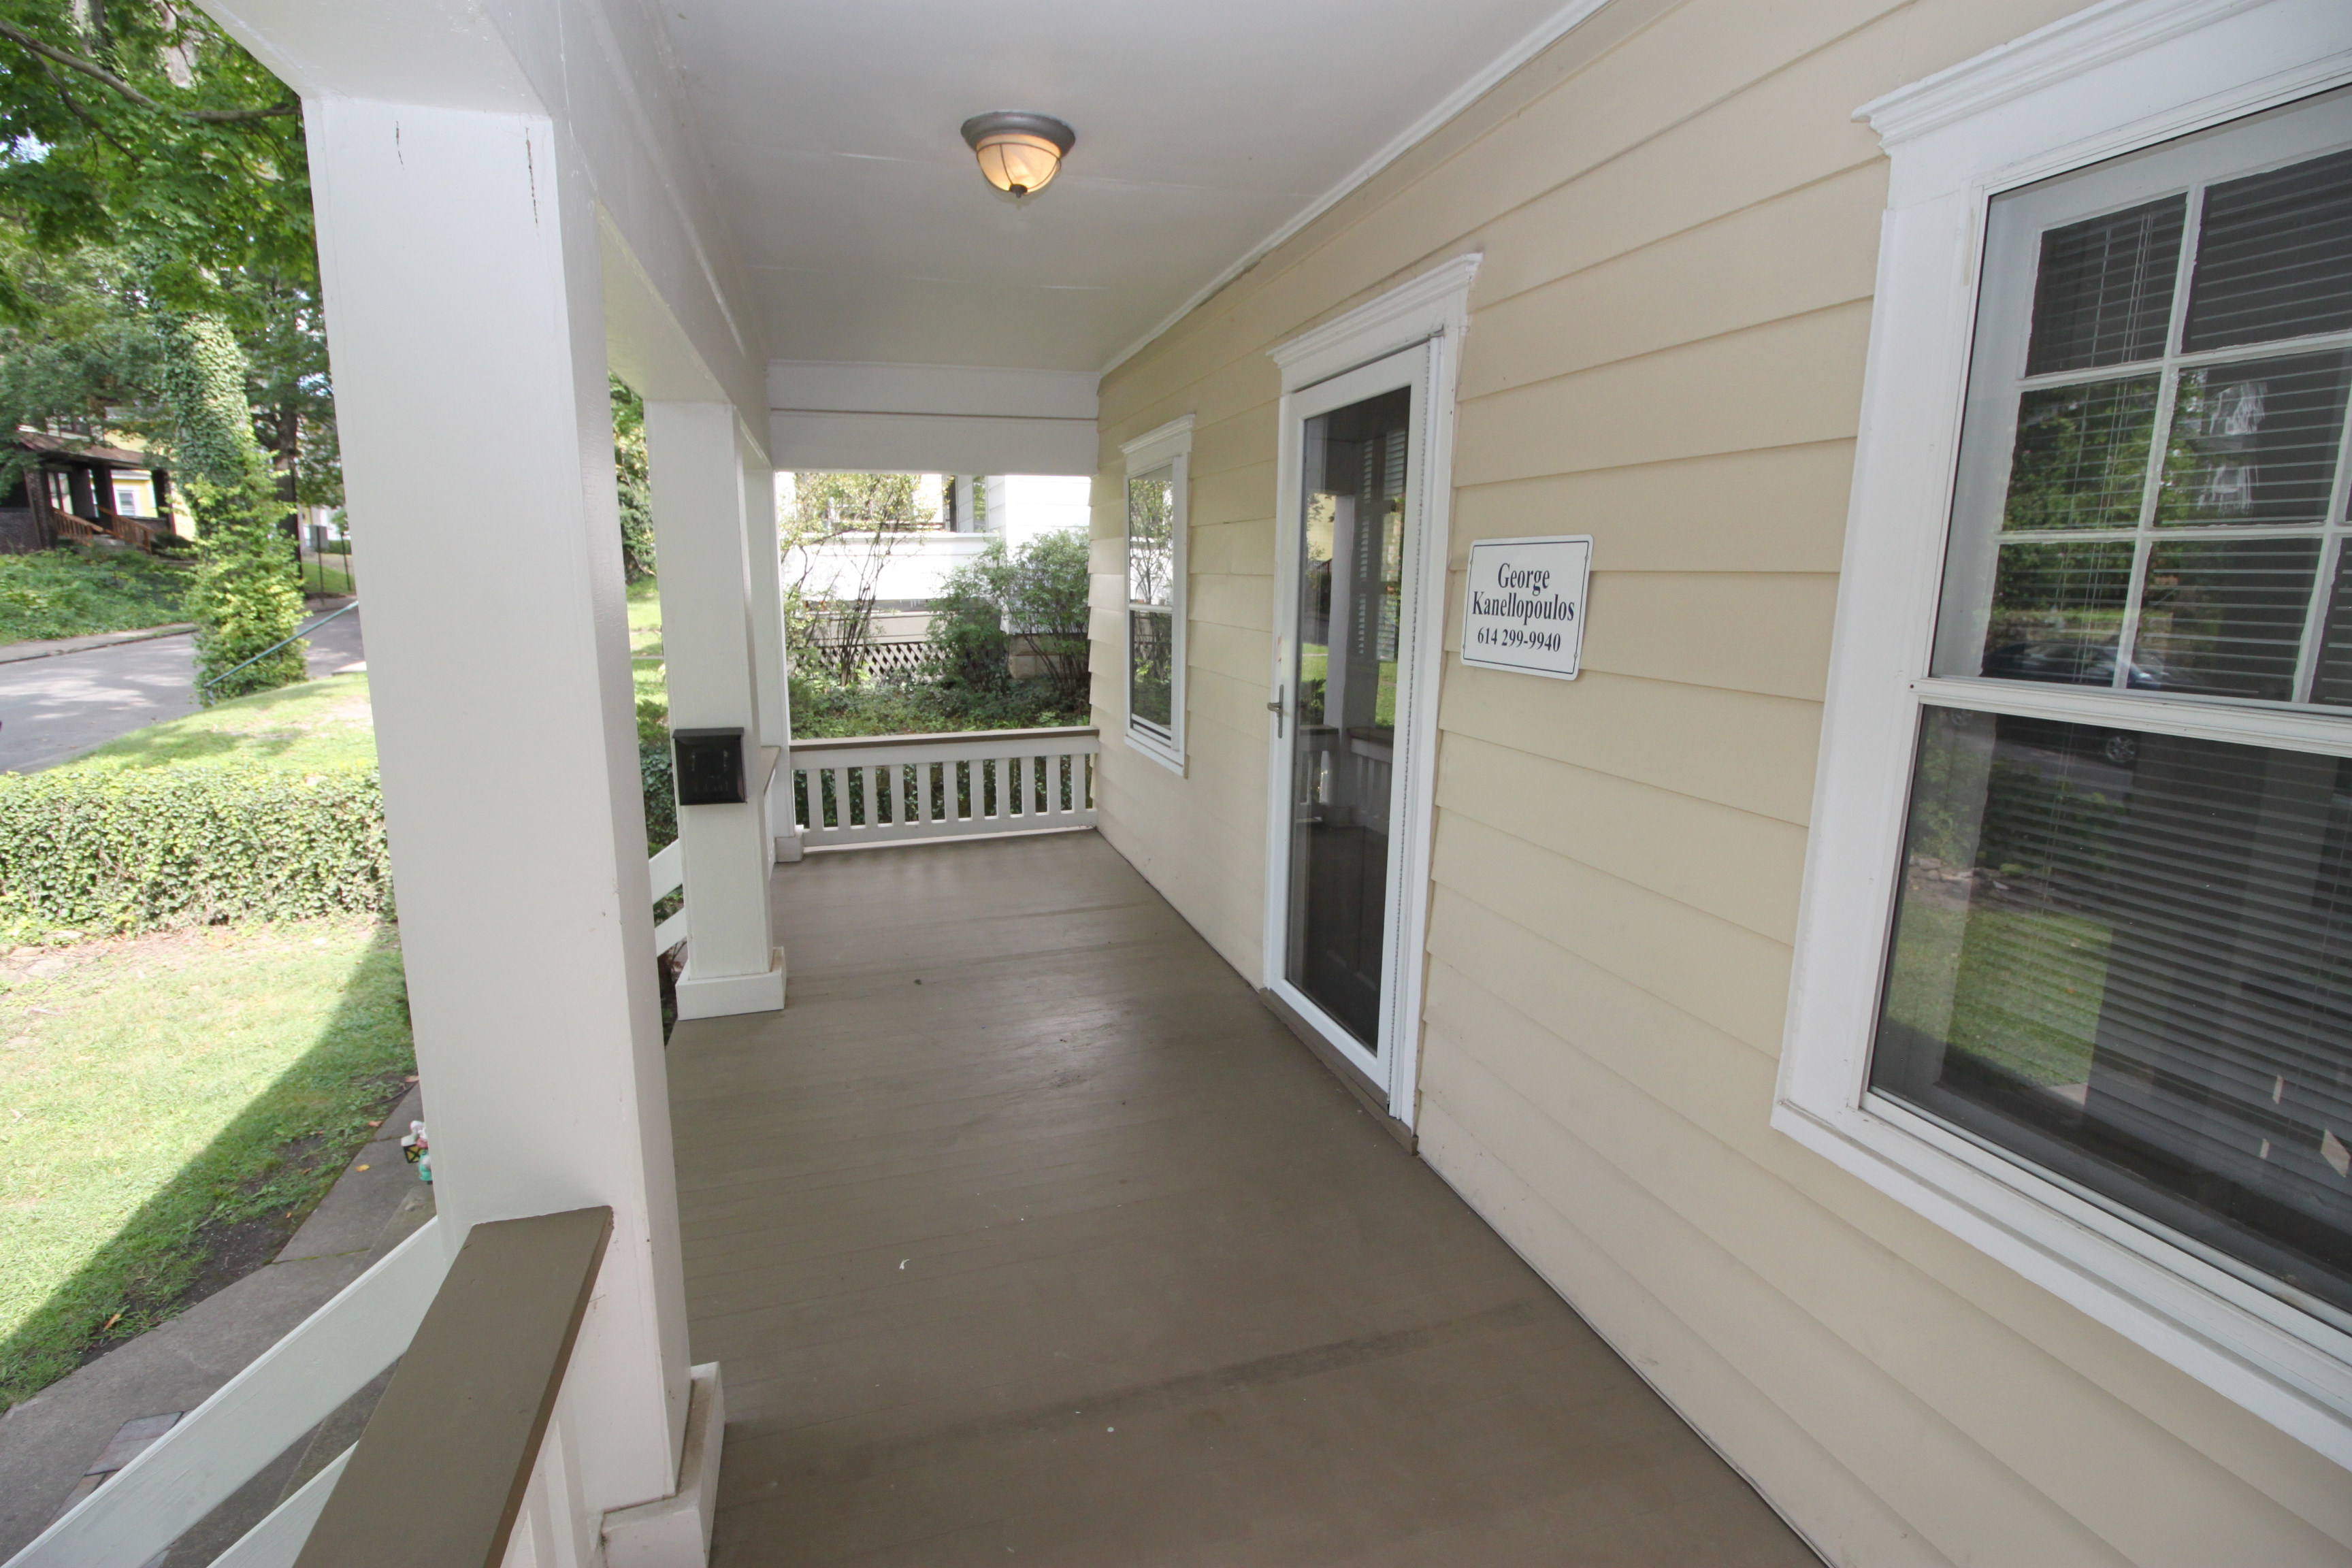 213 East Oakland Avenue : Off-Campus and Commuter Student